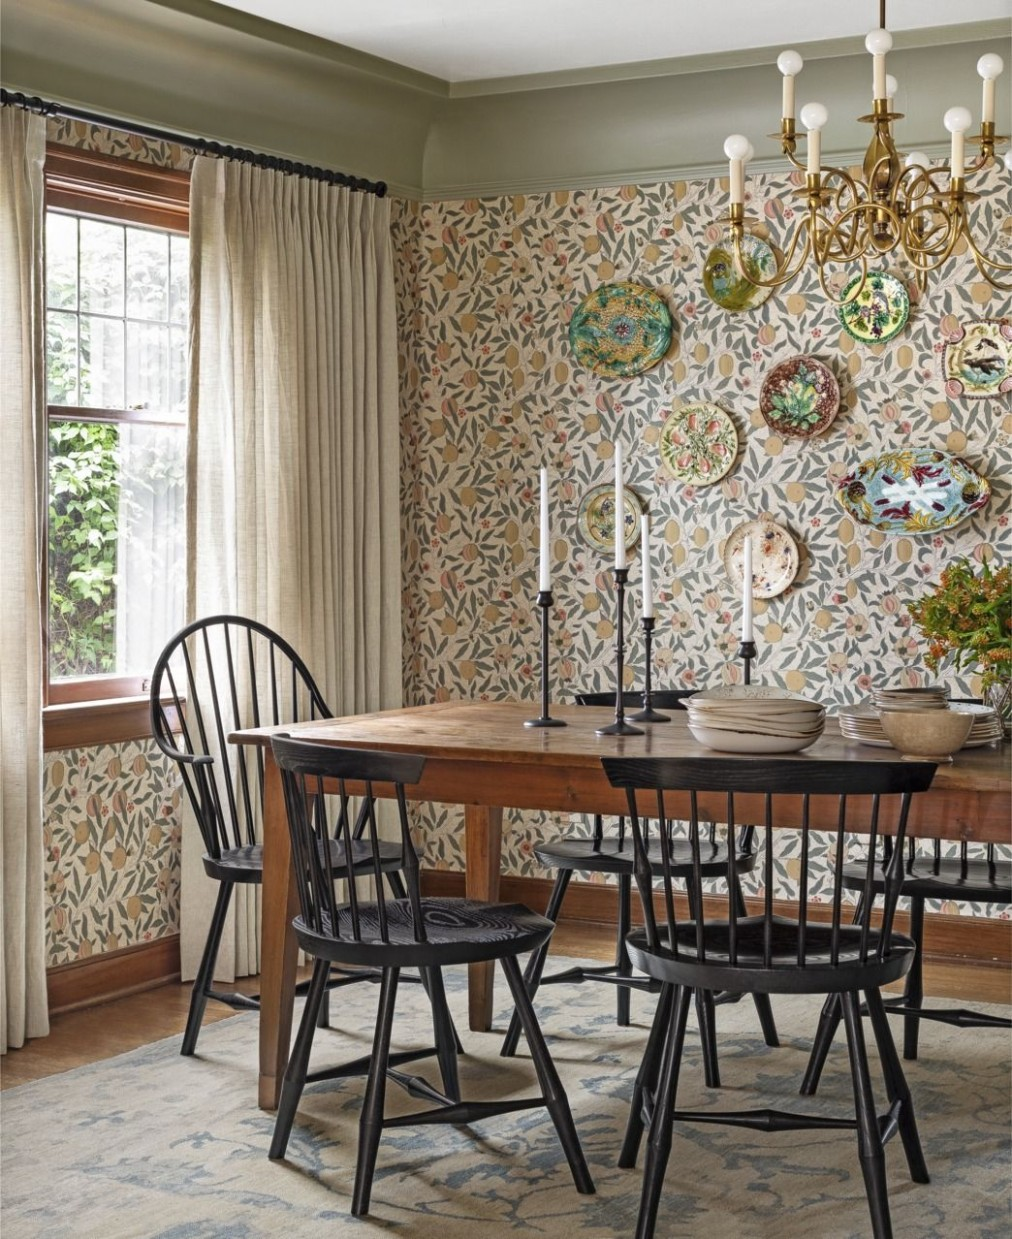 11 Best Dining Room Decorating Ideas - Country Dining Room Decor - Dining Room Ideas For Walls